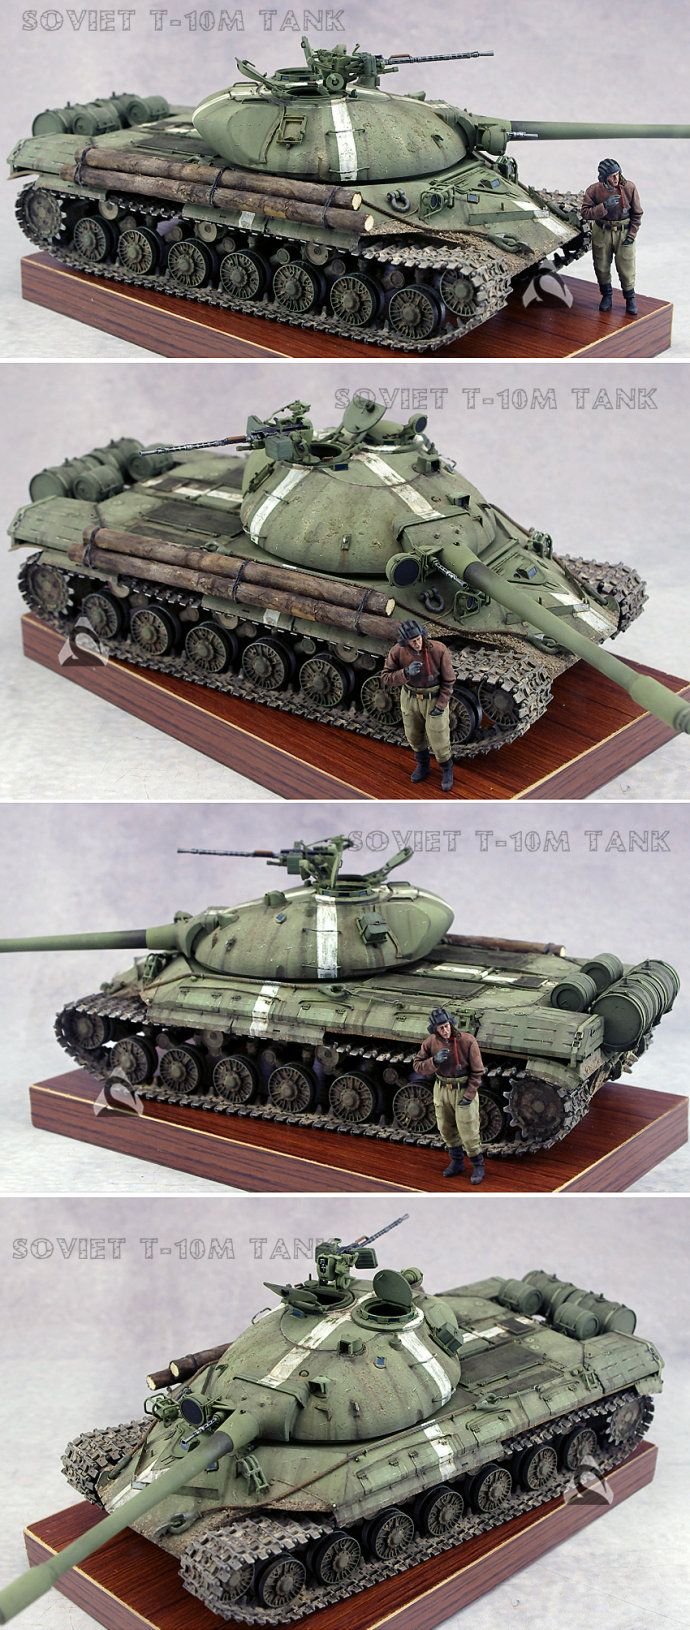 Soviet T-10m heavy tank [35 proportion]